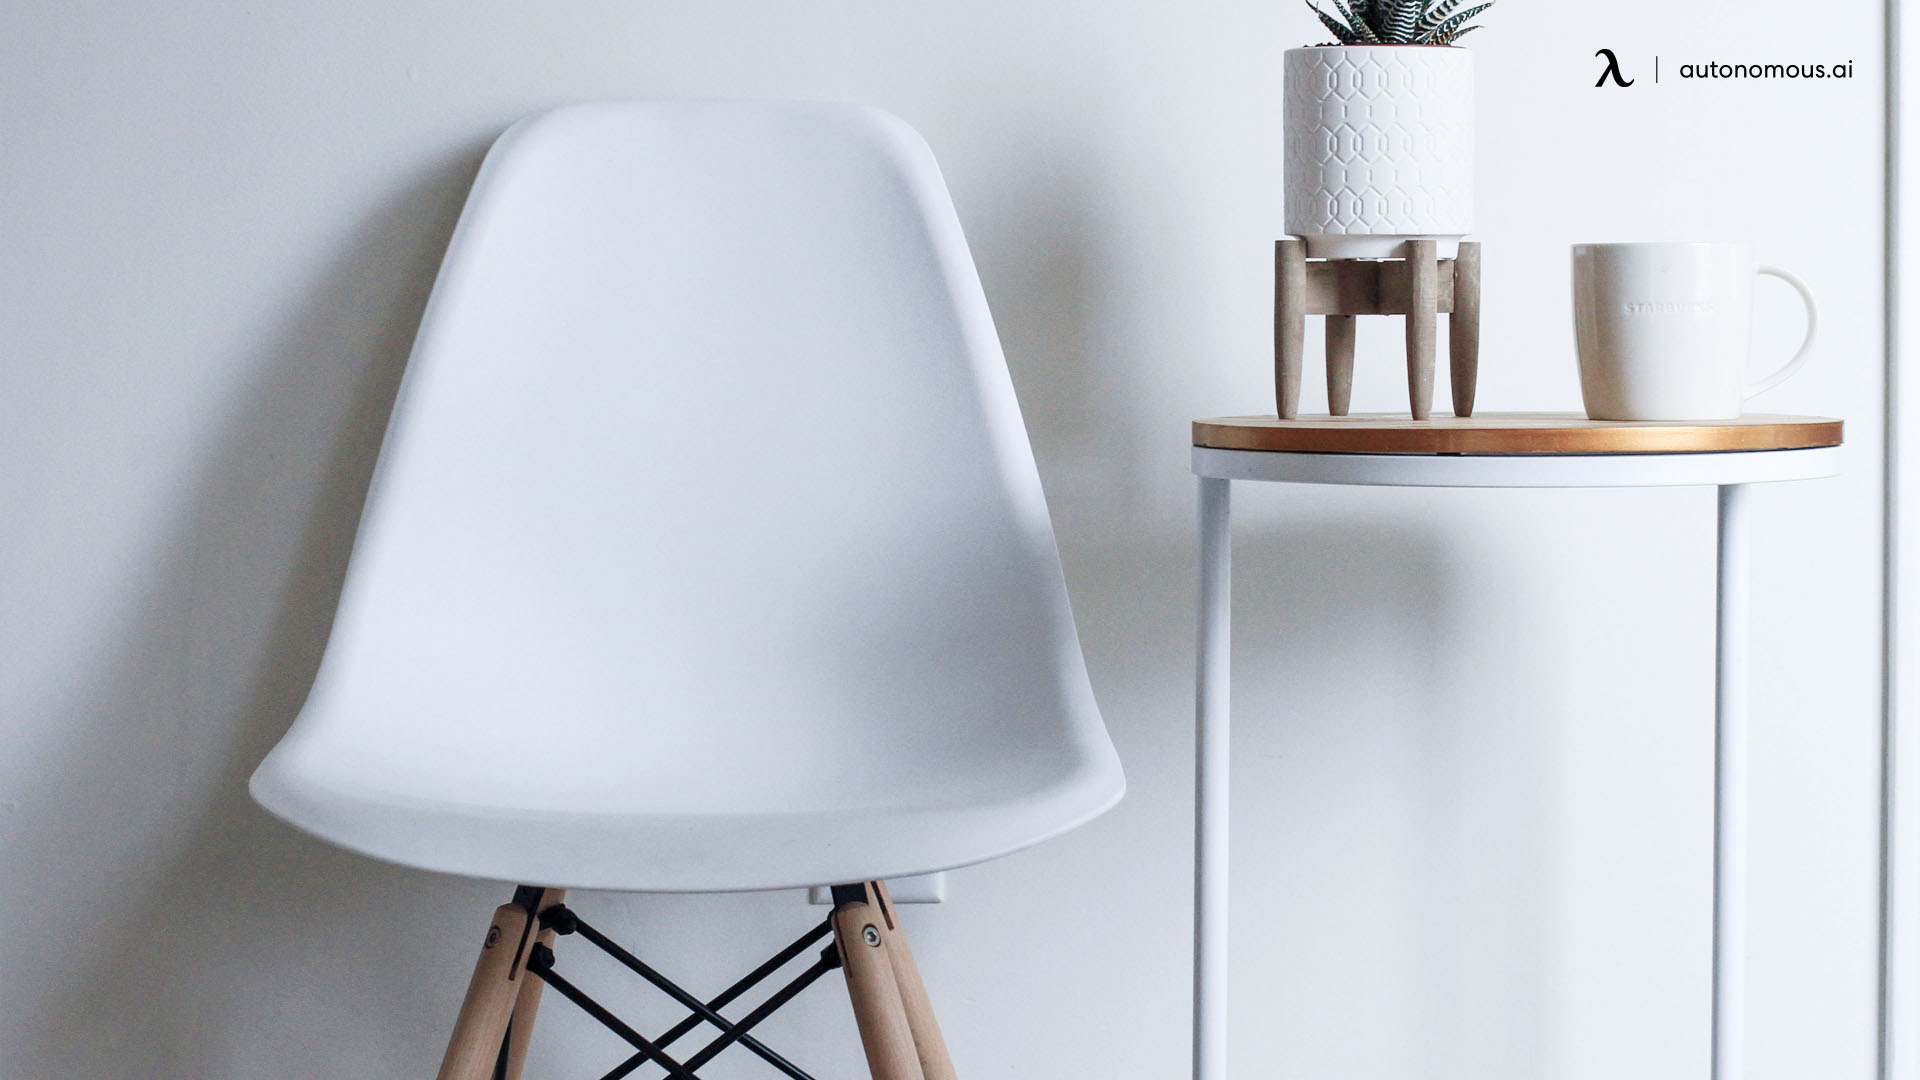 How To Find The Right Desk Height